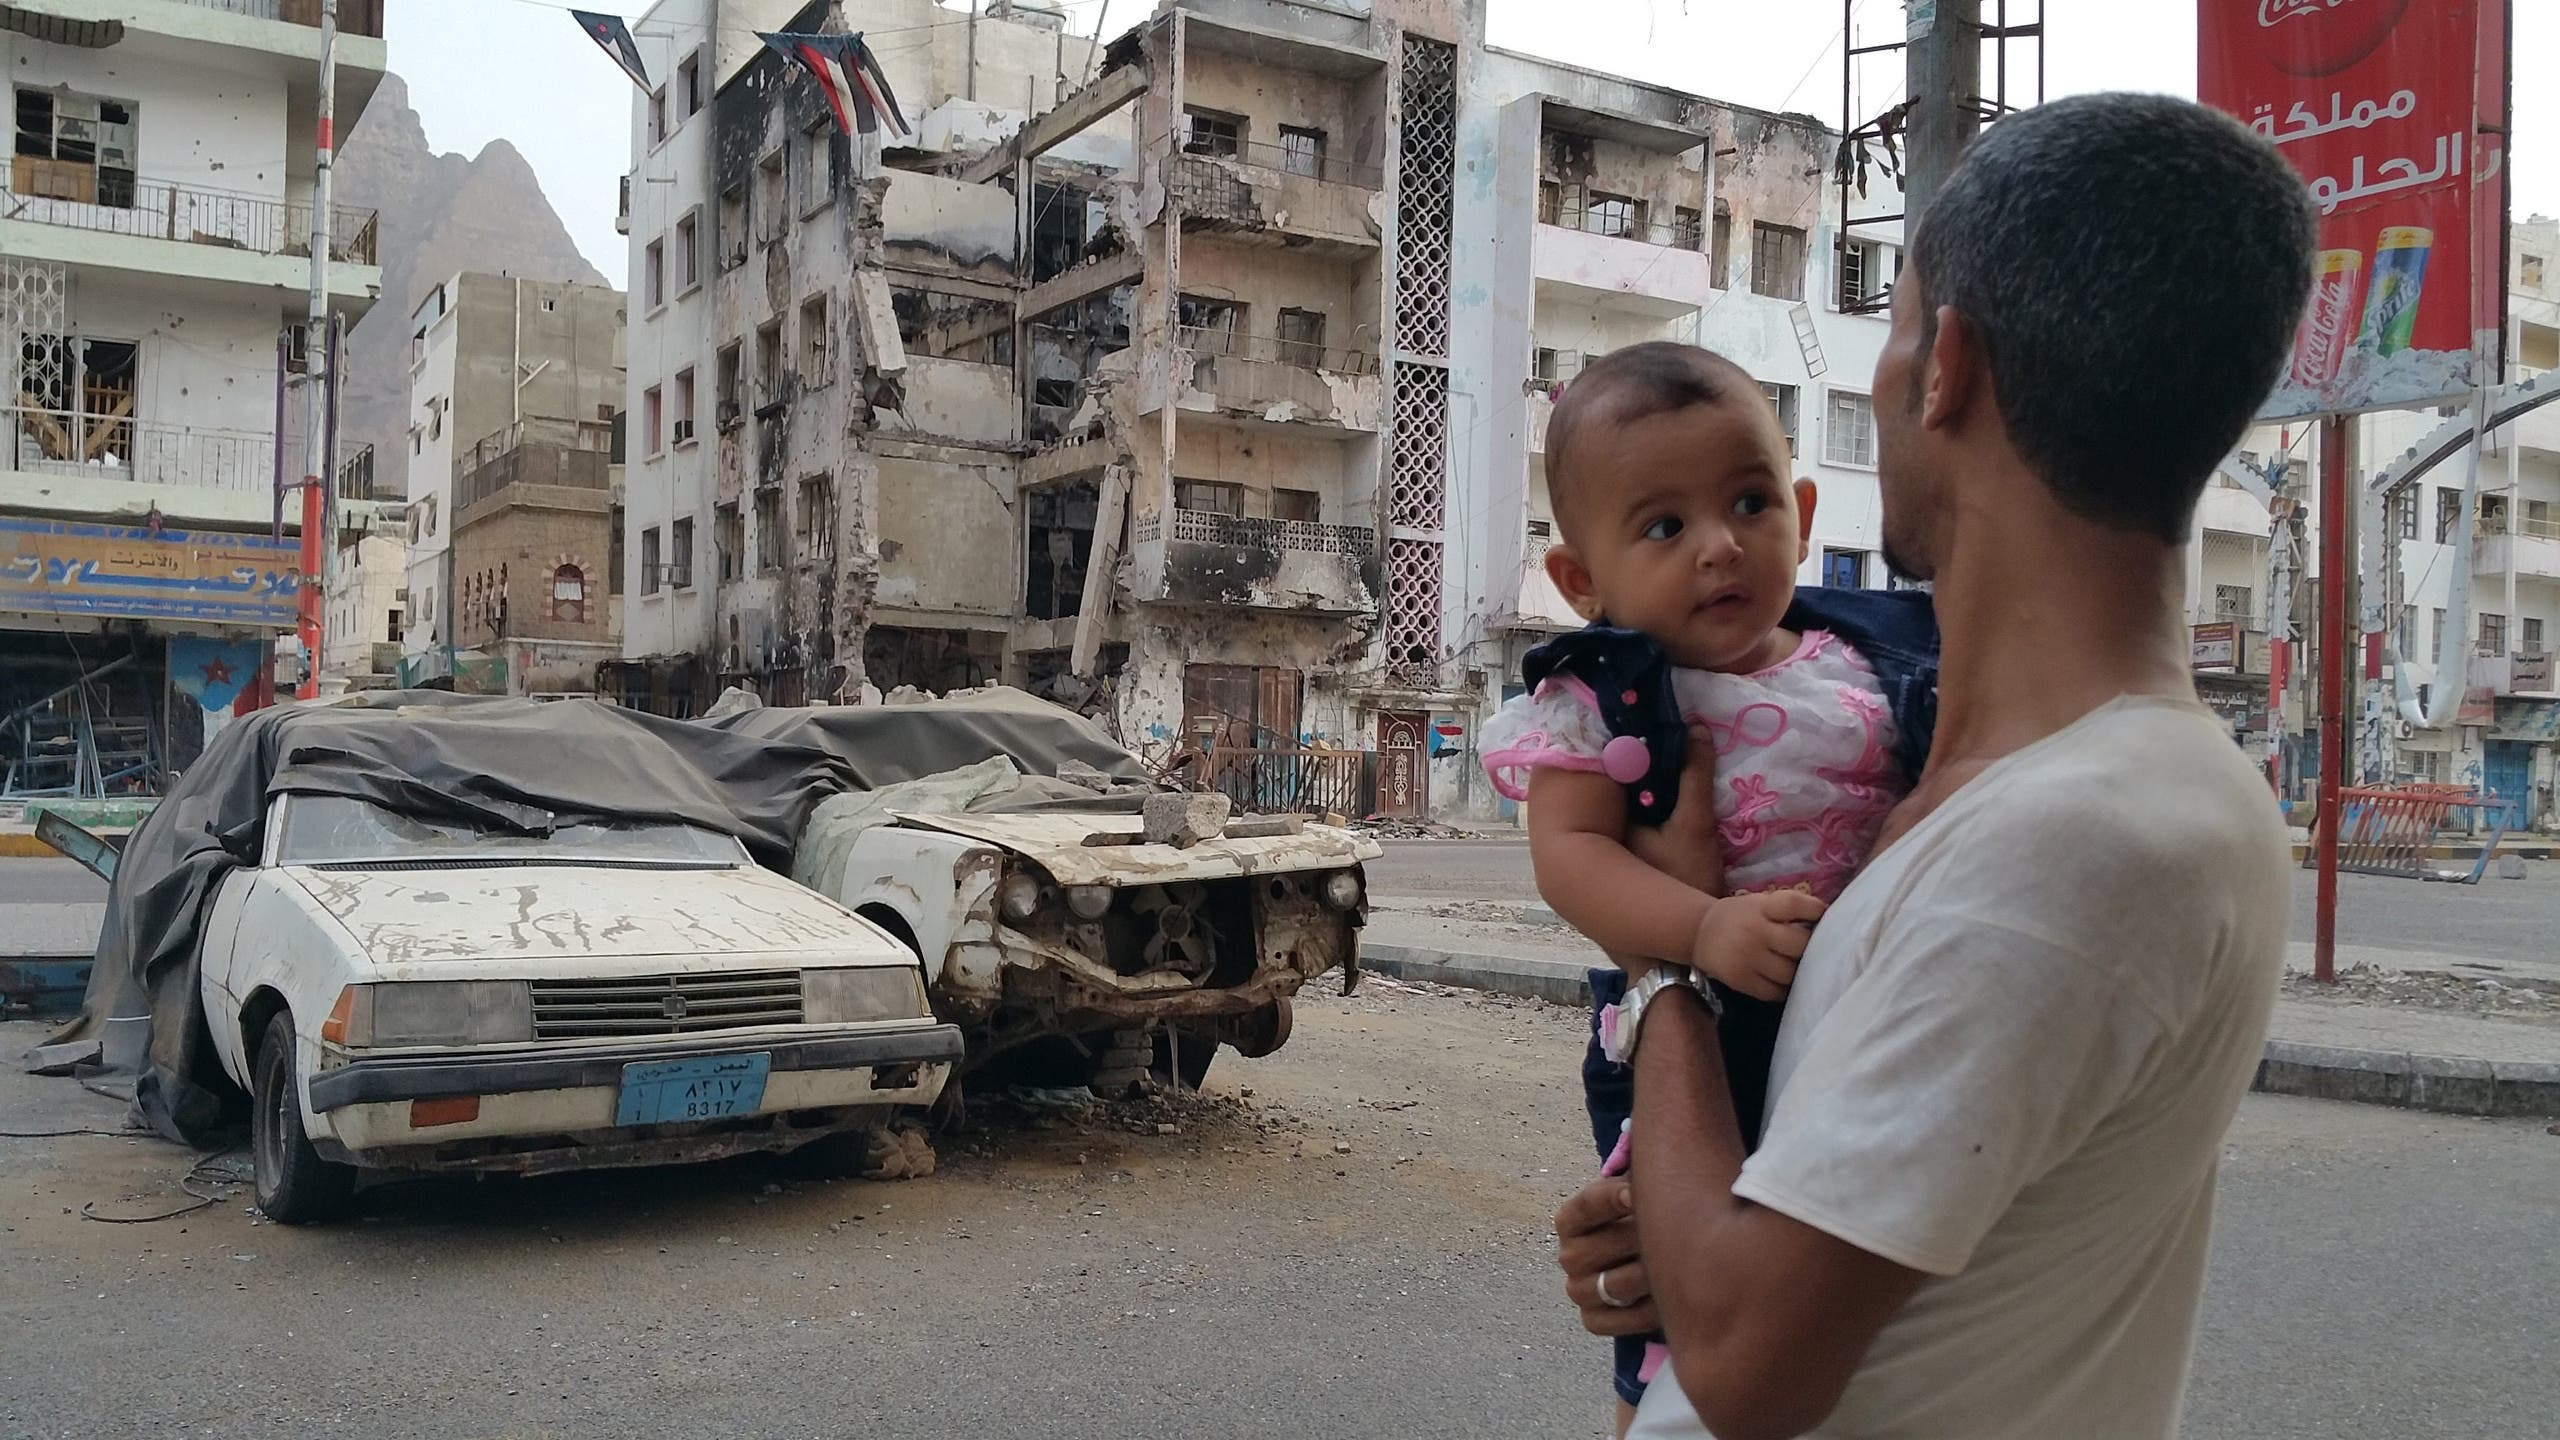 A Yemeni man carrying his daughter looks at a building destroyed during fighting against Houthi fighters in the port city of Aden, Yemen, Sunday, July 19, 2015.  AP